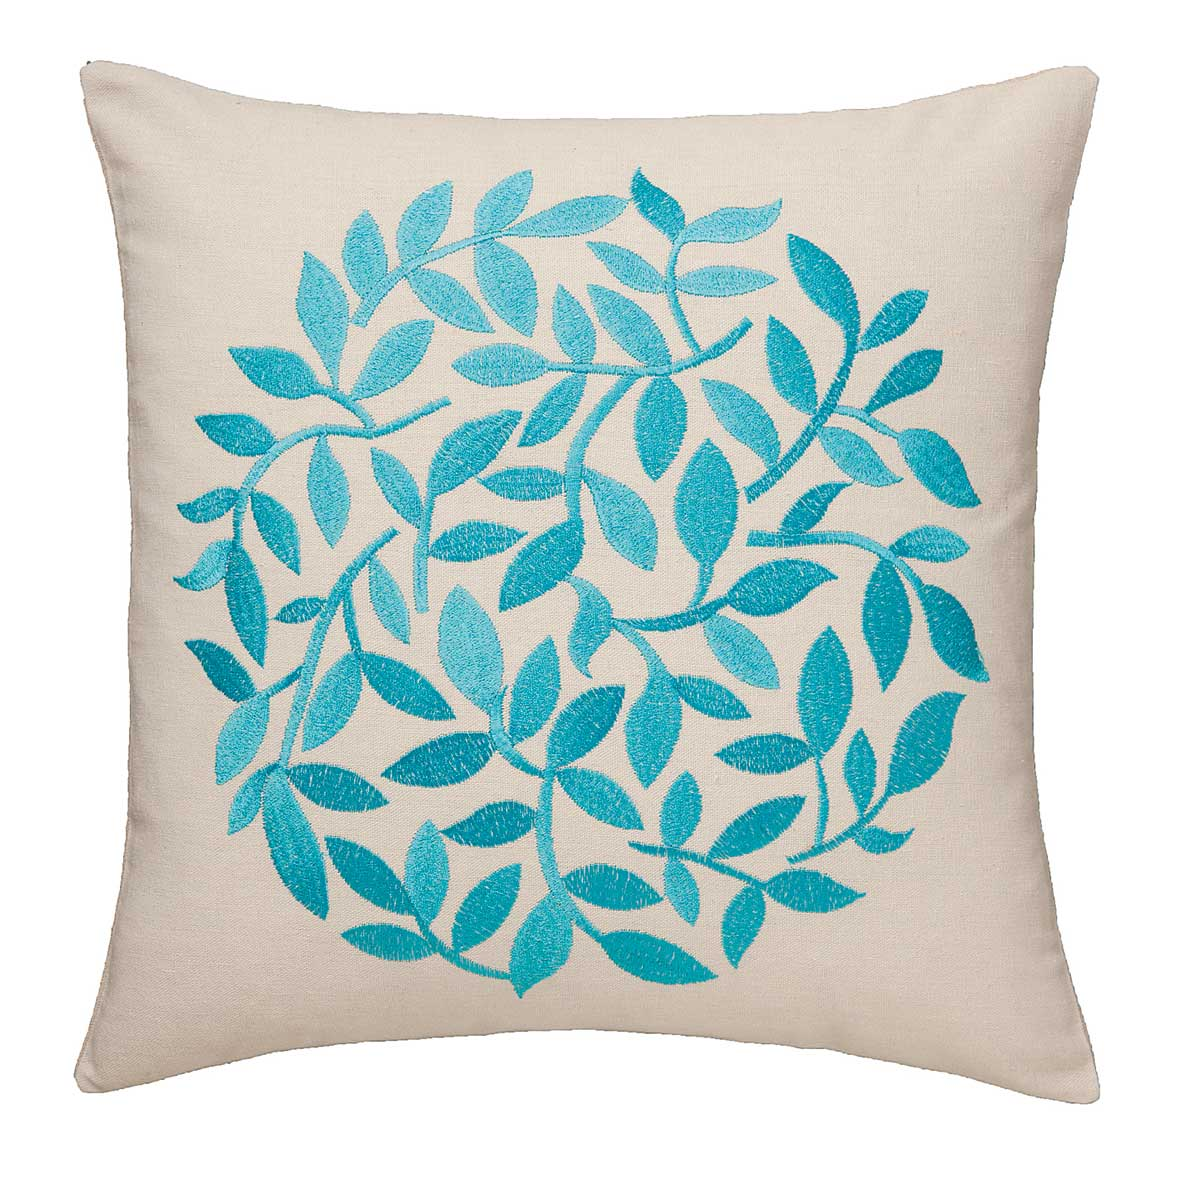 Topiary Embroidered Leaf Cushion Cover Teal 43x43cm